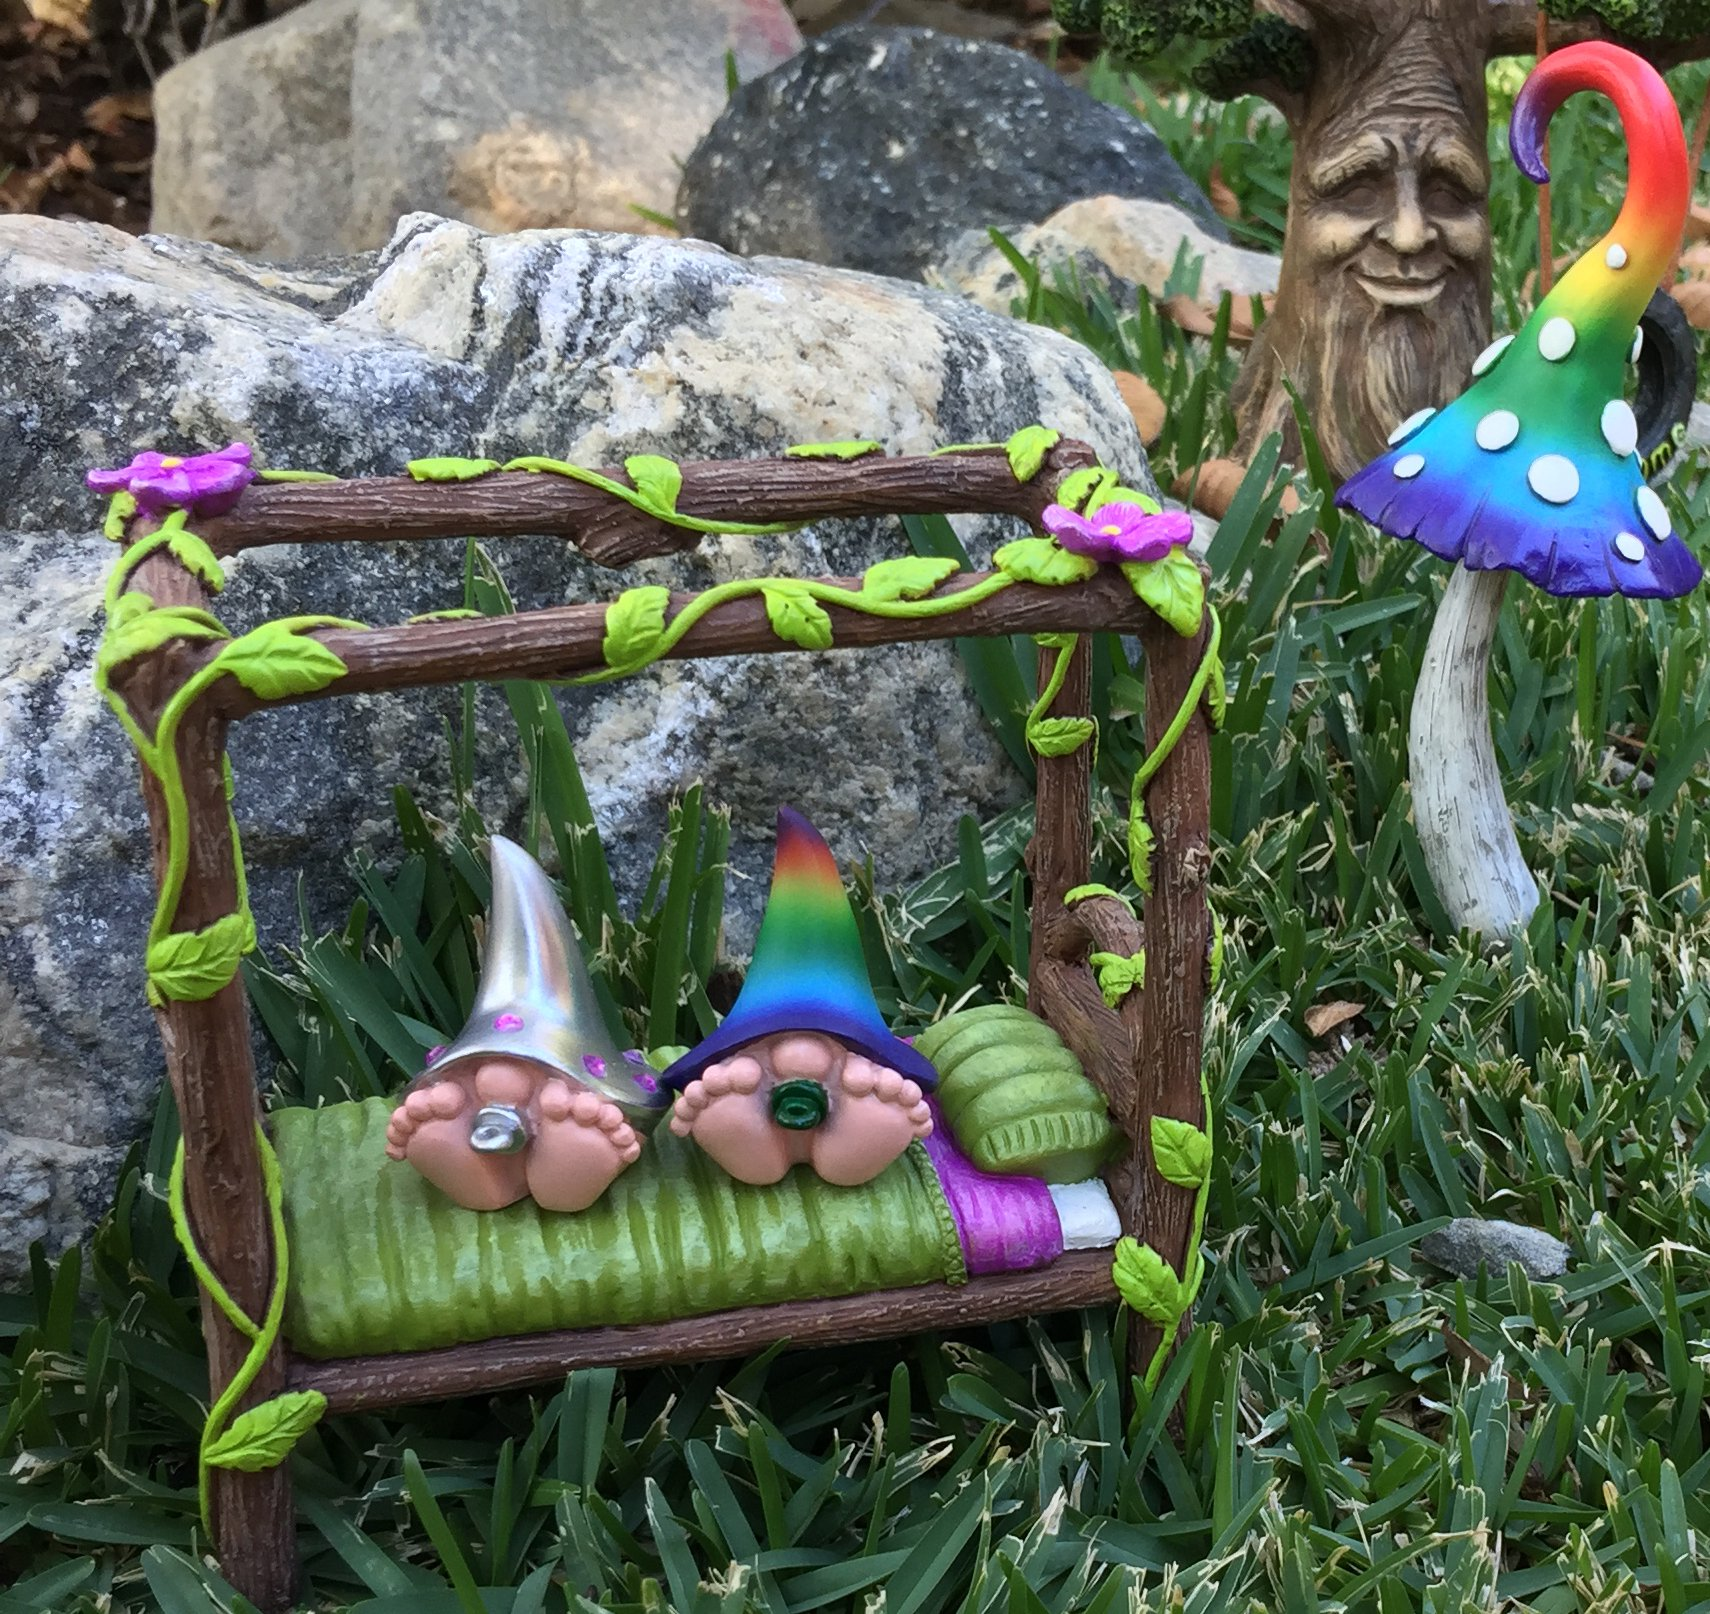 GlitZGlam Miniature Baby Gnomes 4 Pack Collection – The Baby Gnomes for The Fairy Garden That Garden Fairies Love by GlitZGlam (Image #6)